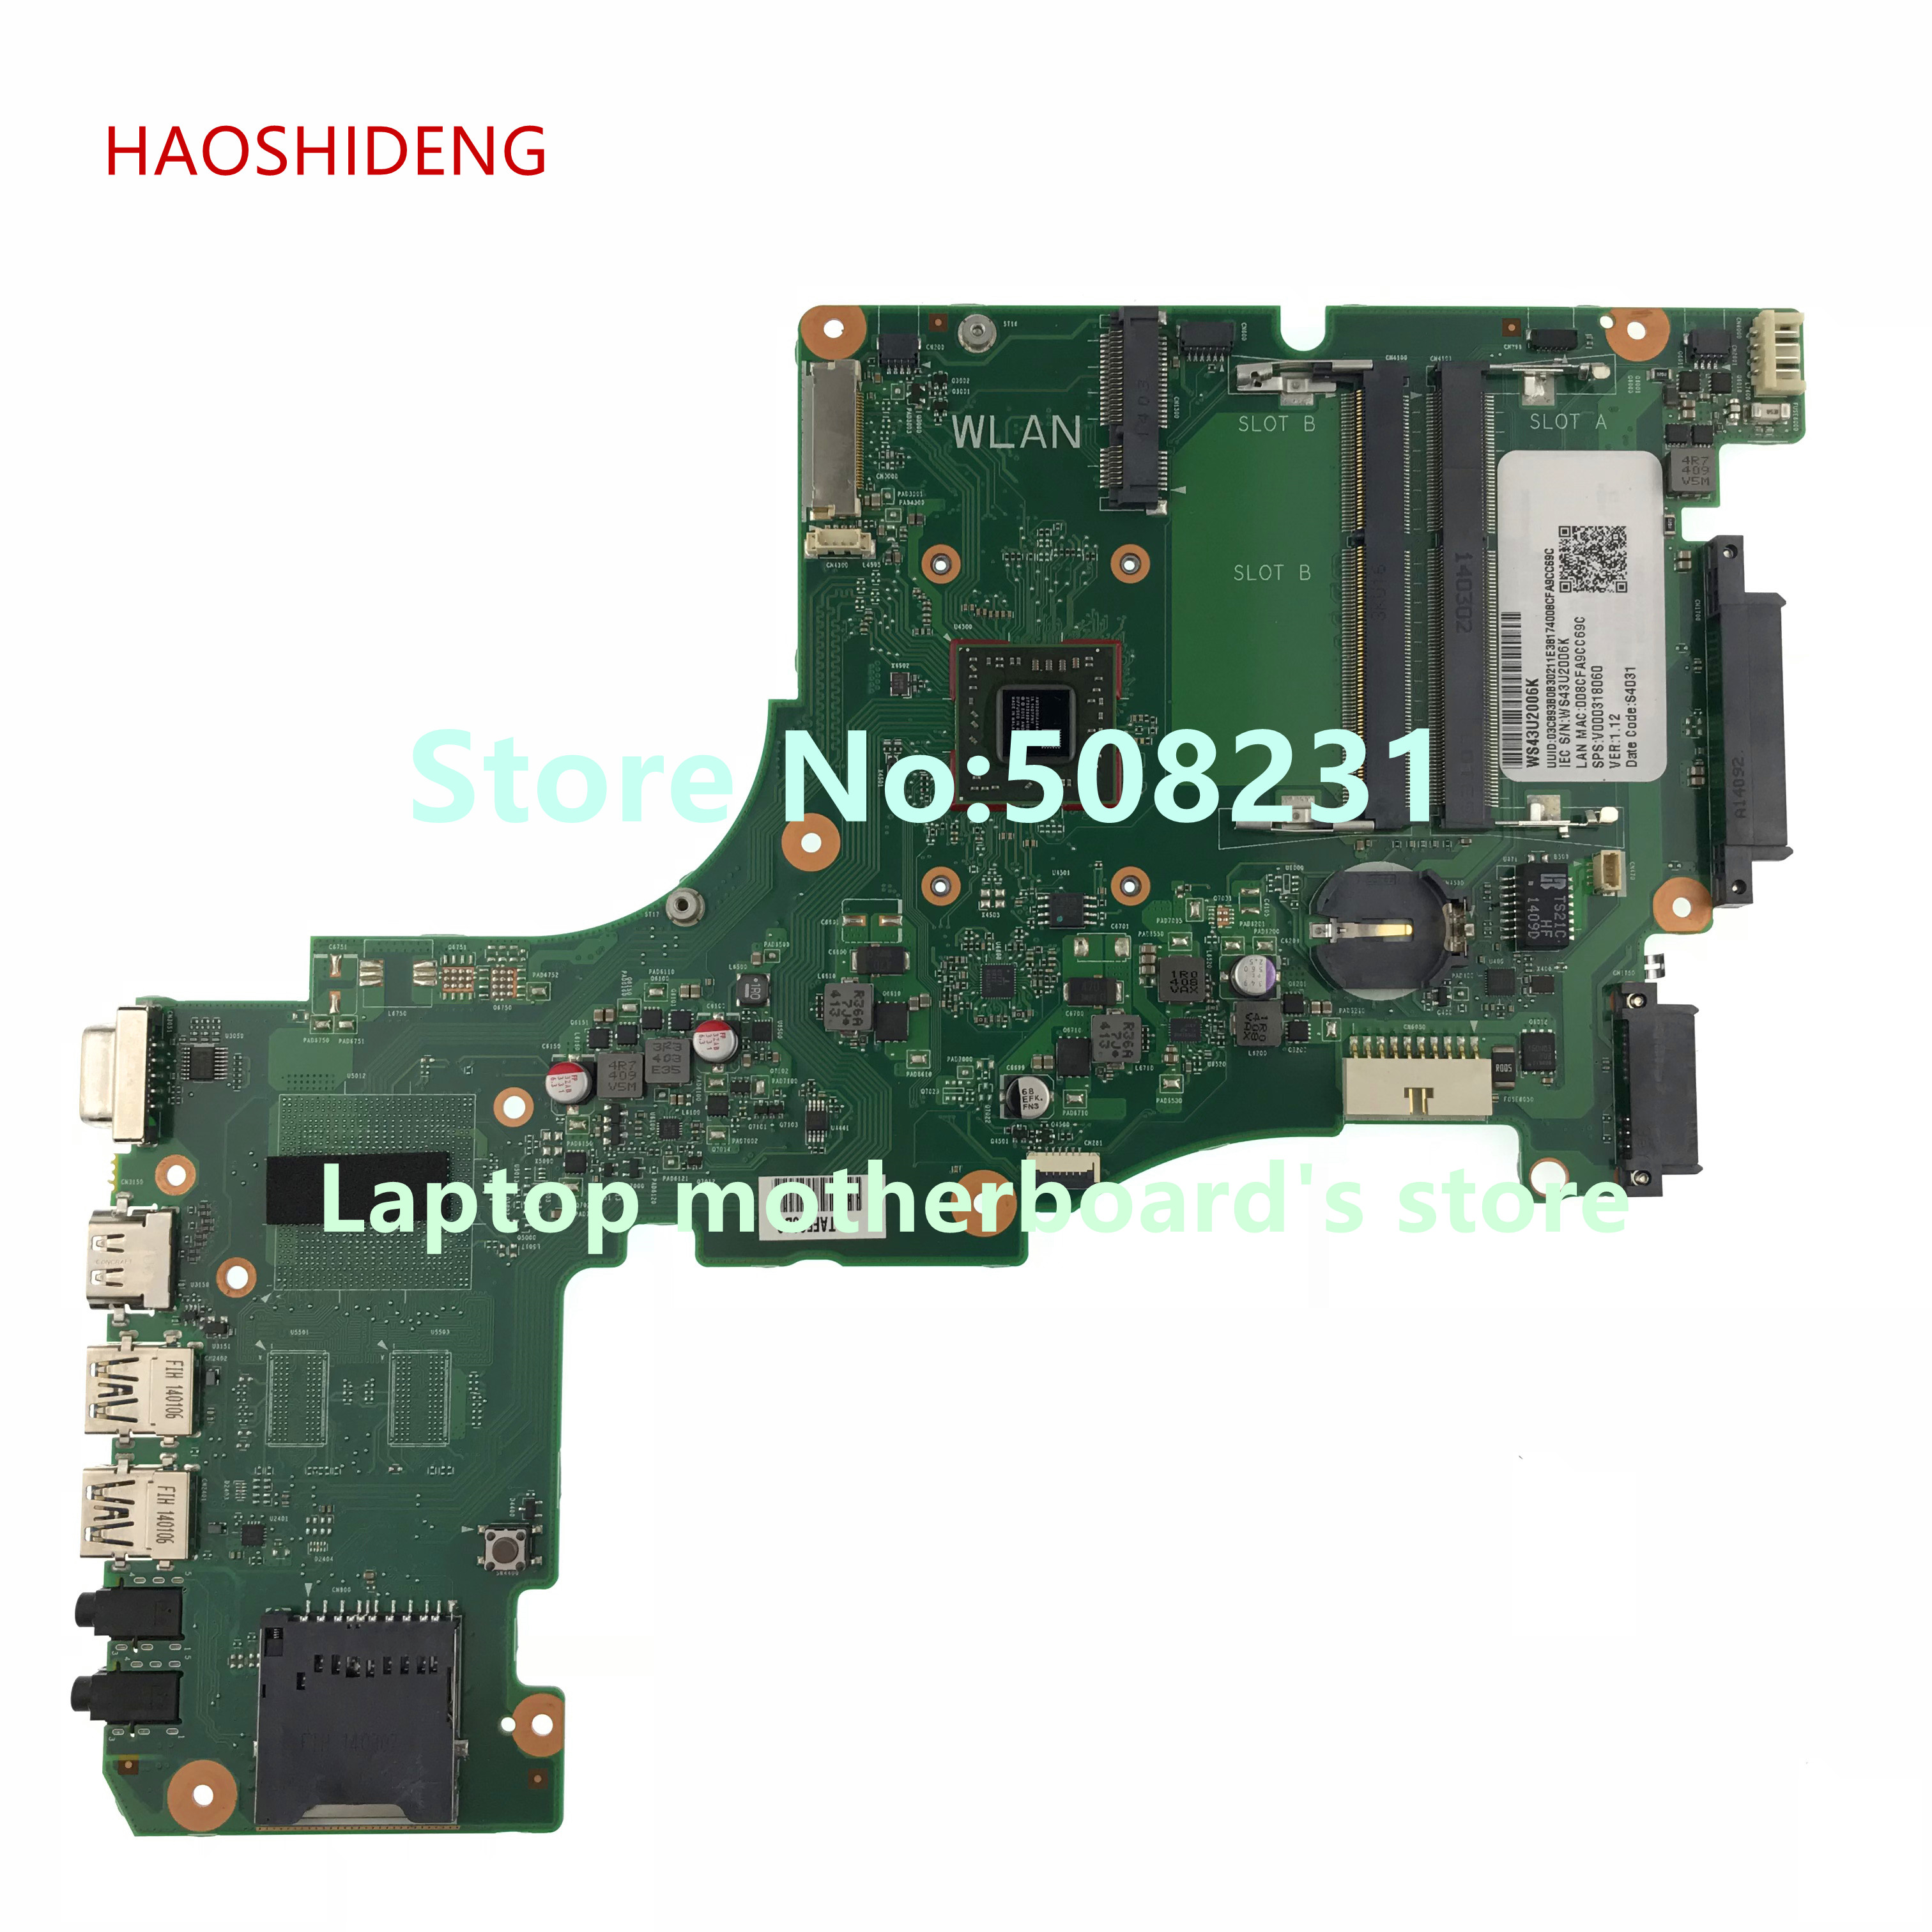 HAOSHIDENG V000318060 CR10AN-6050A2556101-MB-A02 Mainboard for Toshiba Satellite L50DT L50DT-A Laptop Motherboard with A6-5200 haoshideng v000325090 mainboard for toshiba satellite c55dt c50dt a laptop motherboard 6050a2556901 mb a03